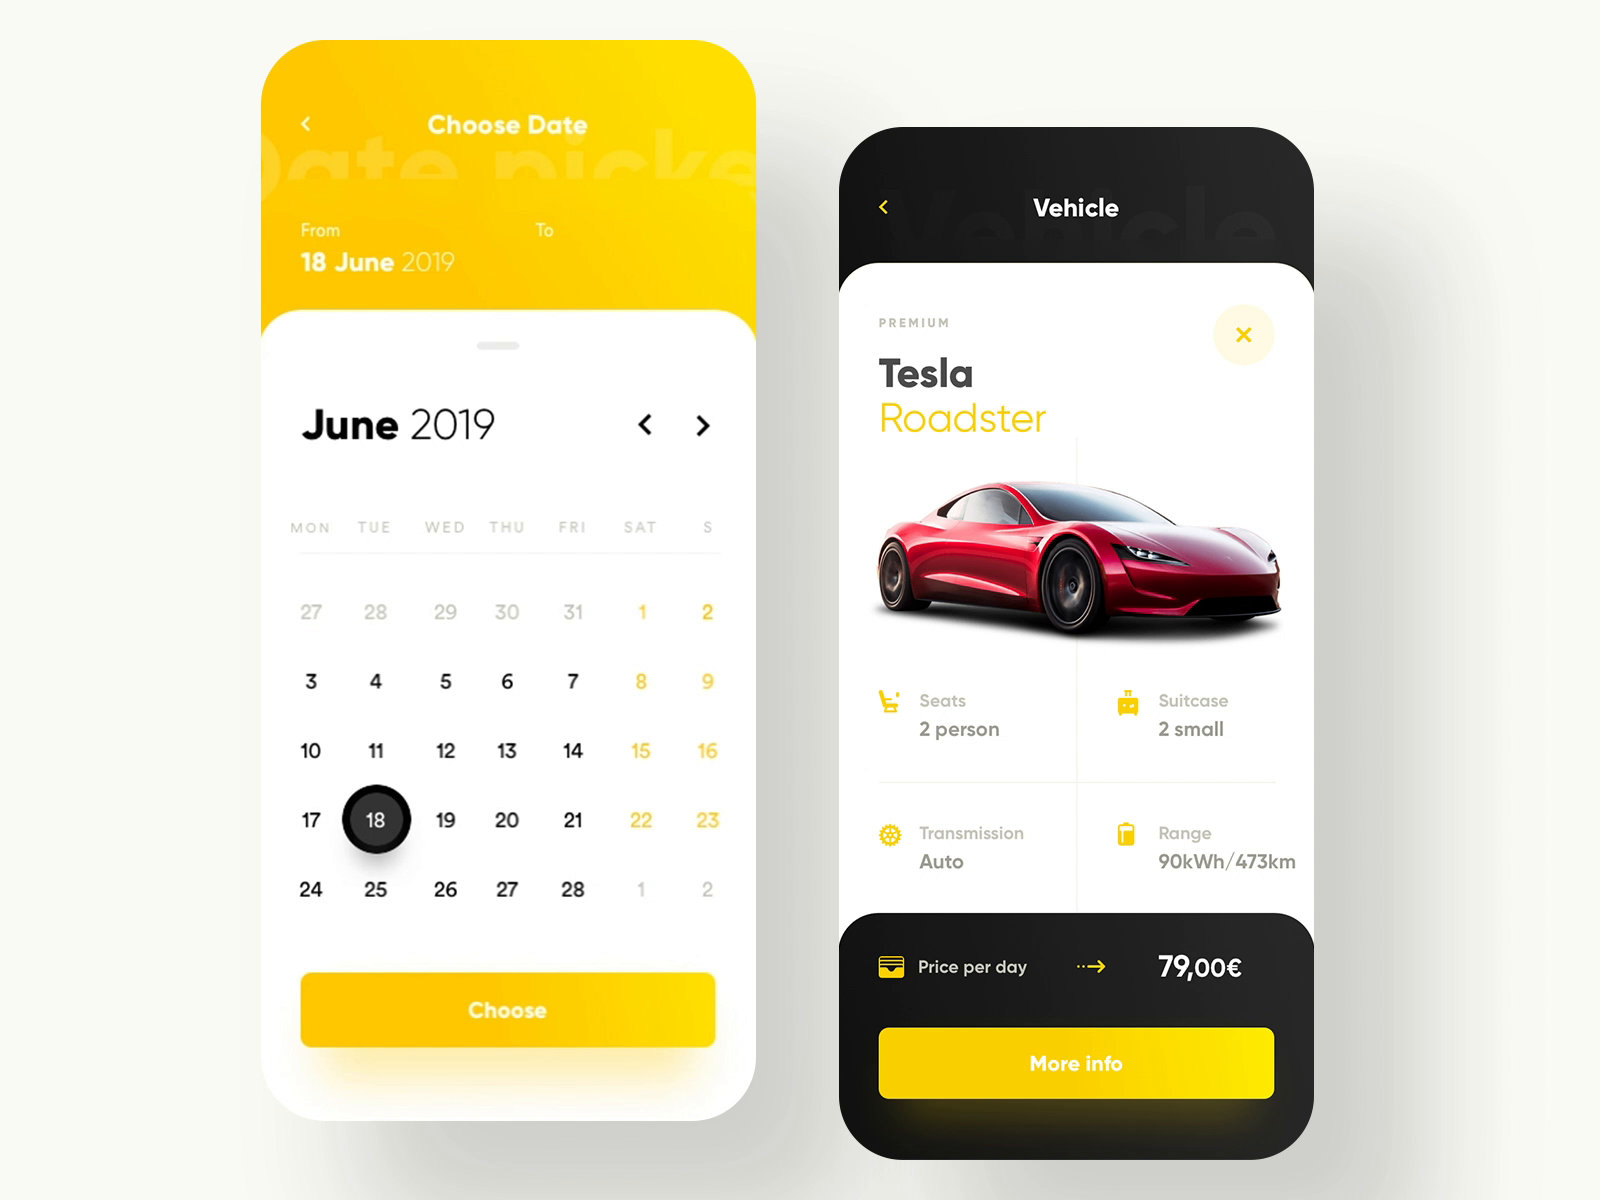 Hertz Car Rental App Redesign by Krystian Bieda 모바일 앱 디자인